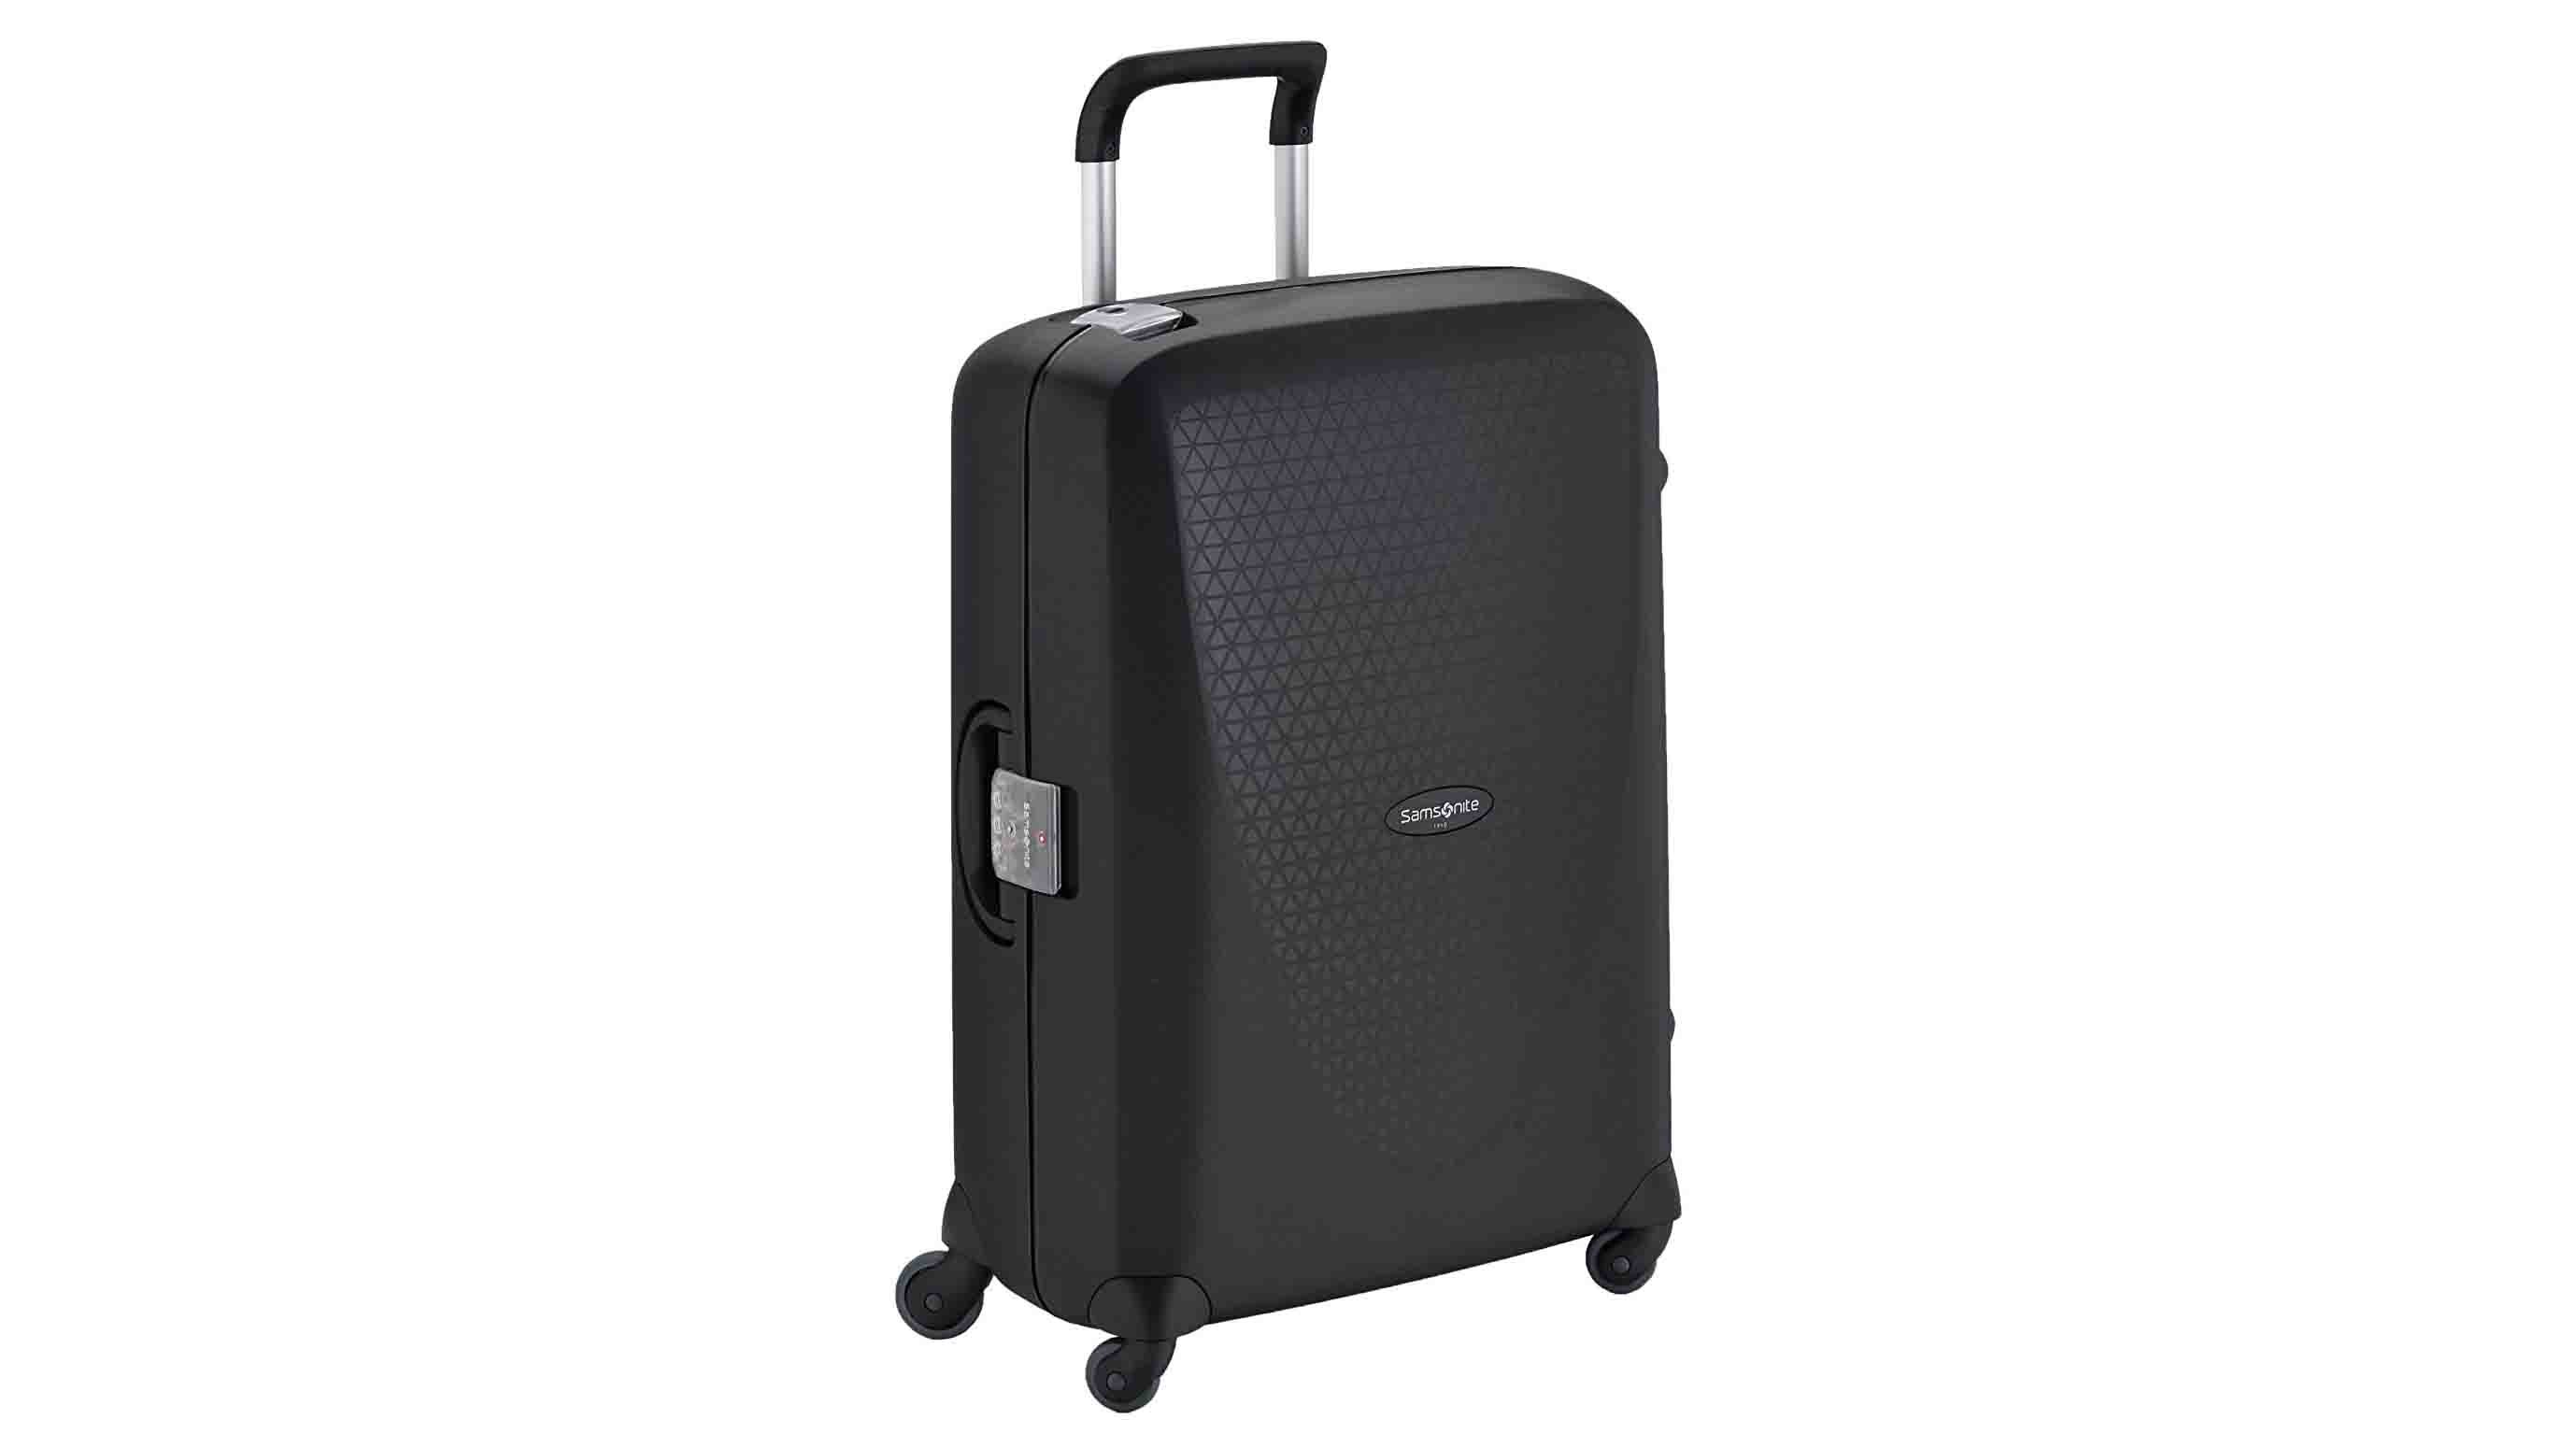 f2ad6c6af746 Best suitcase 2019  Pick up a baggage bargain on these stylish and ...